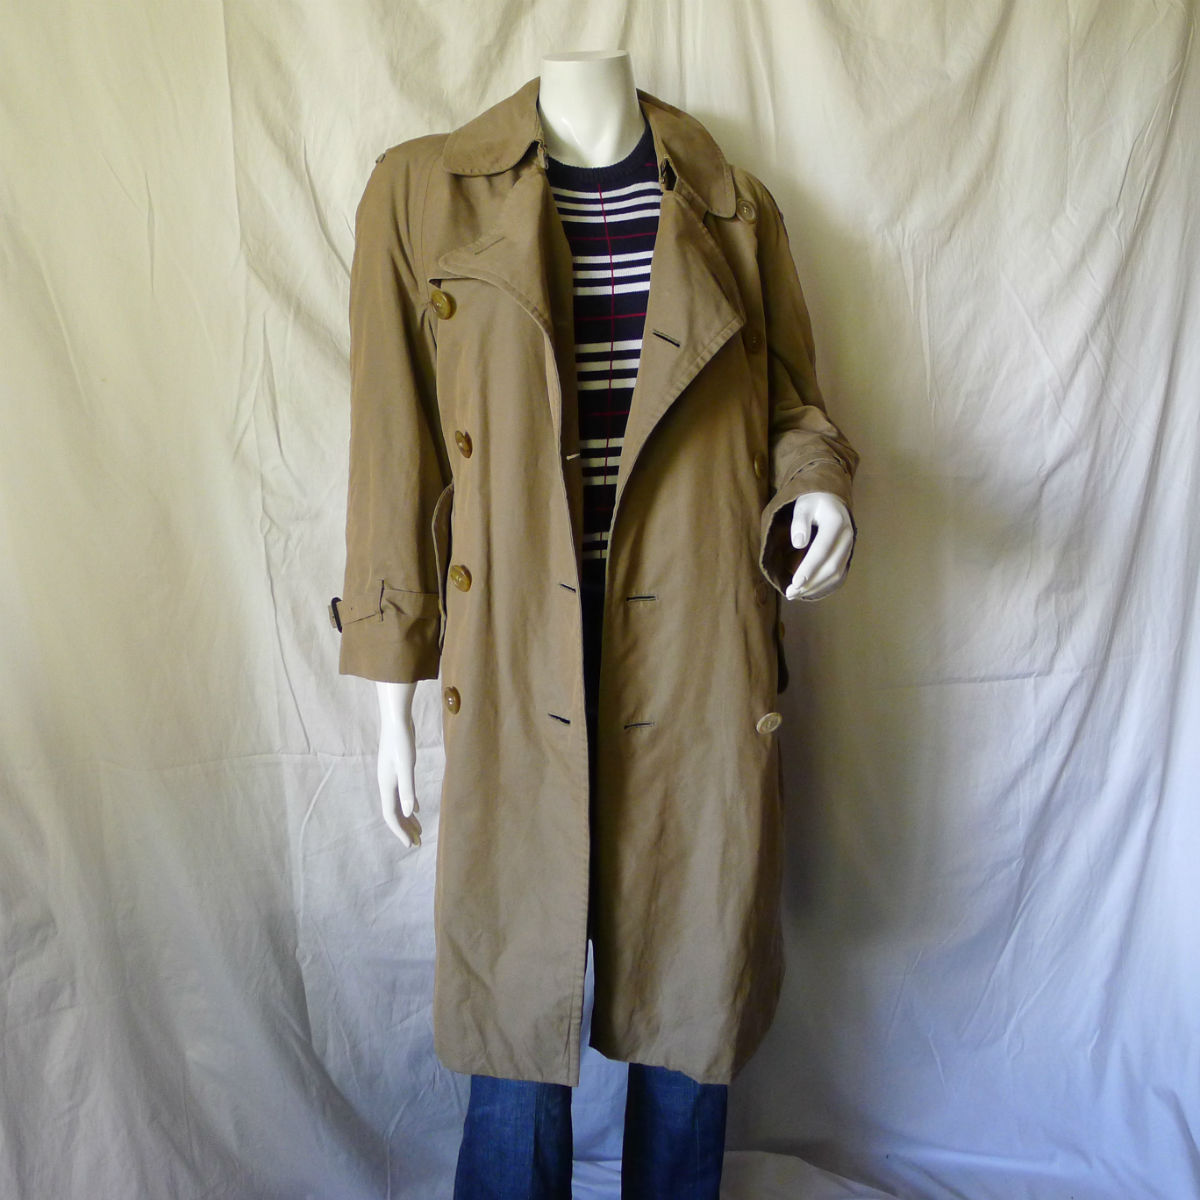 Vintage Burberrys Trench Coat - Manila, Philippines